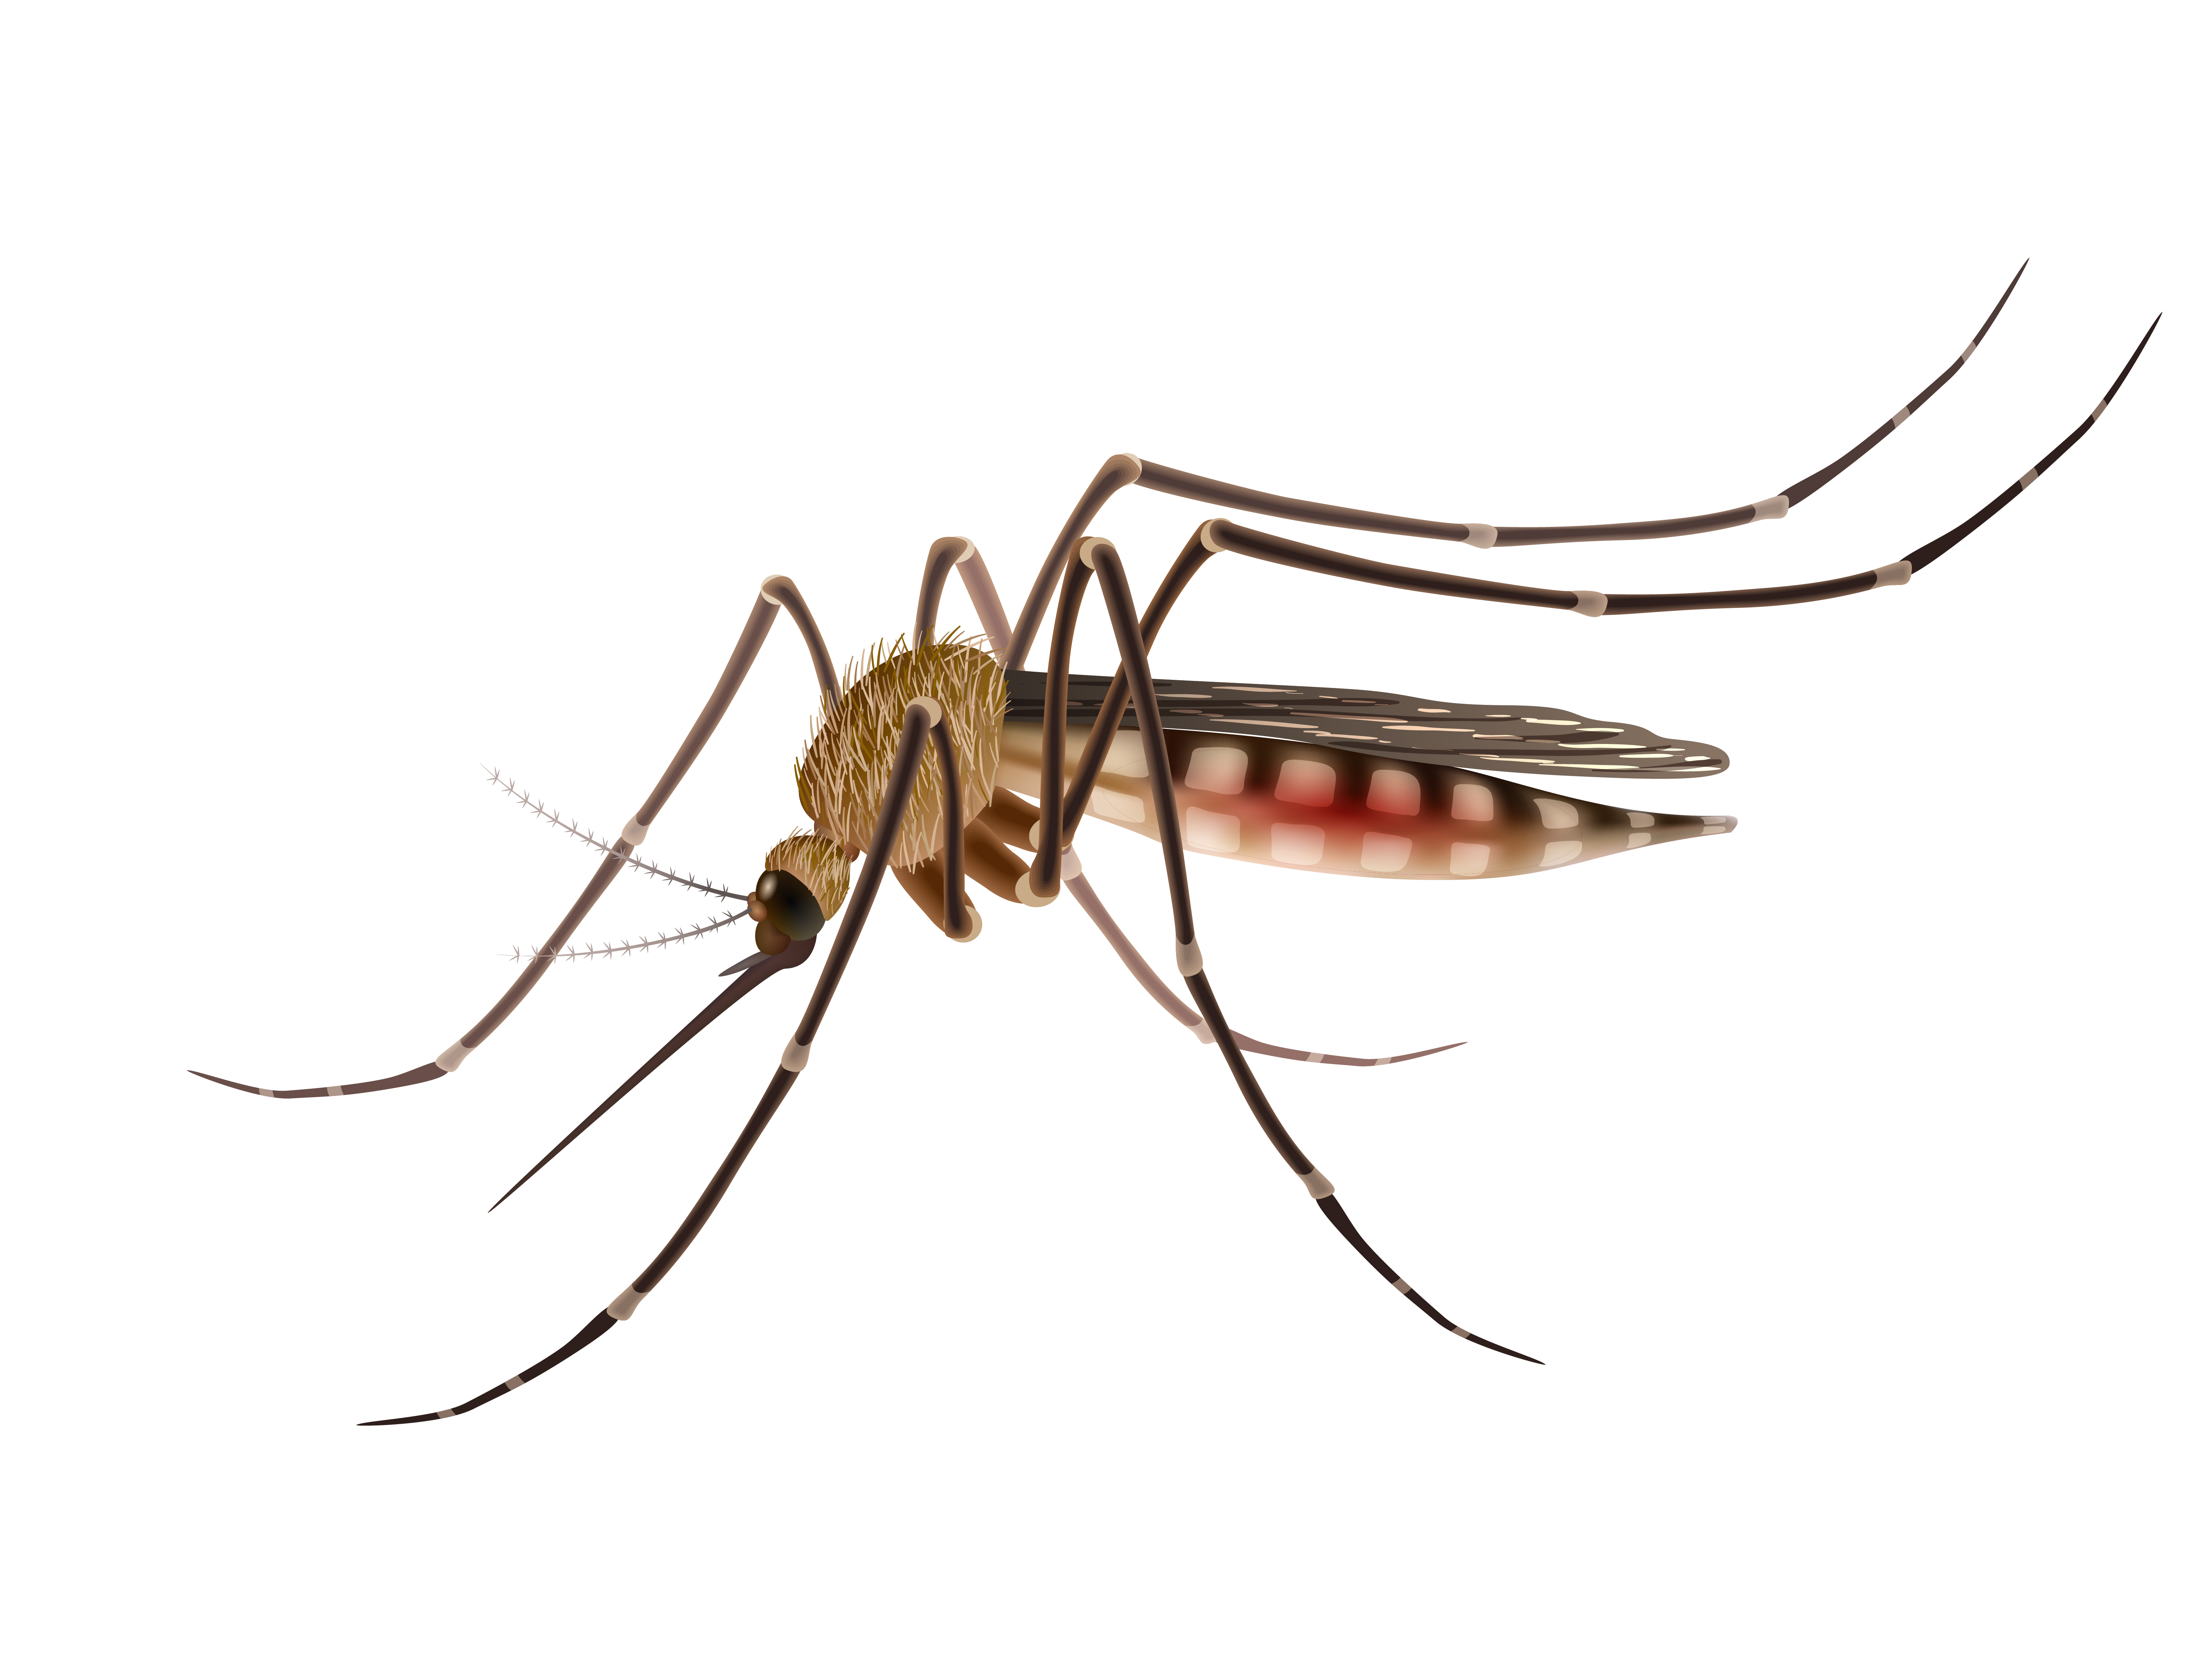 Mosquito Realistic Illustration Download Free Vectors